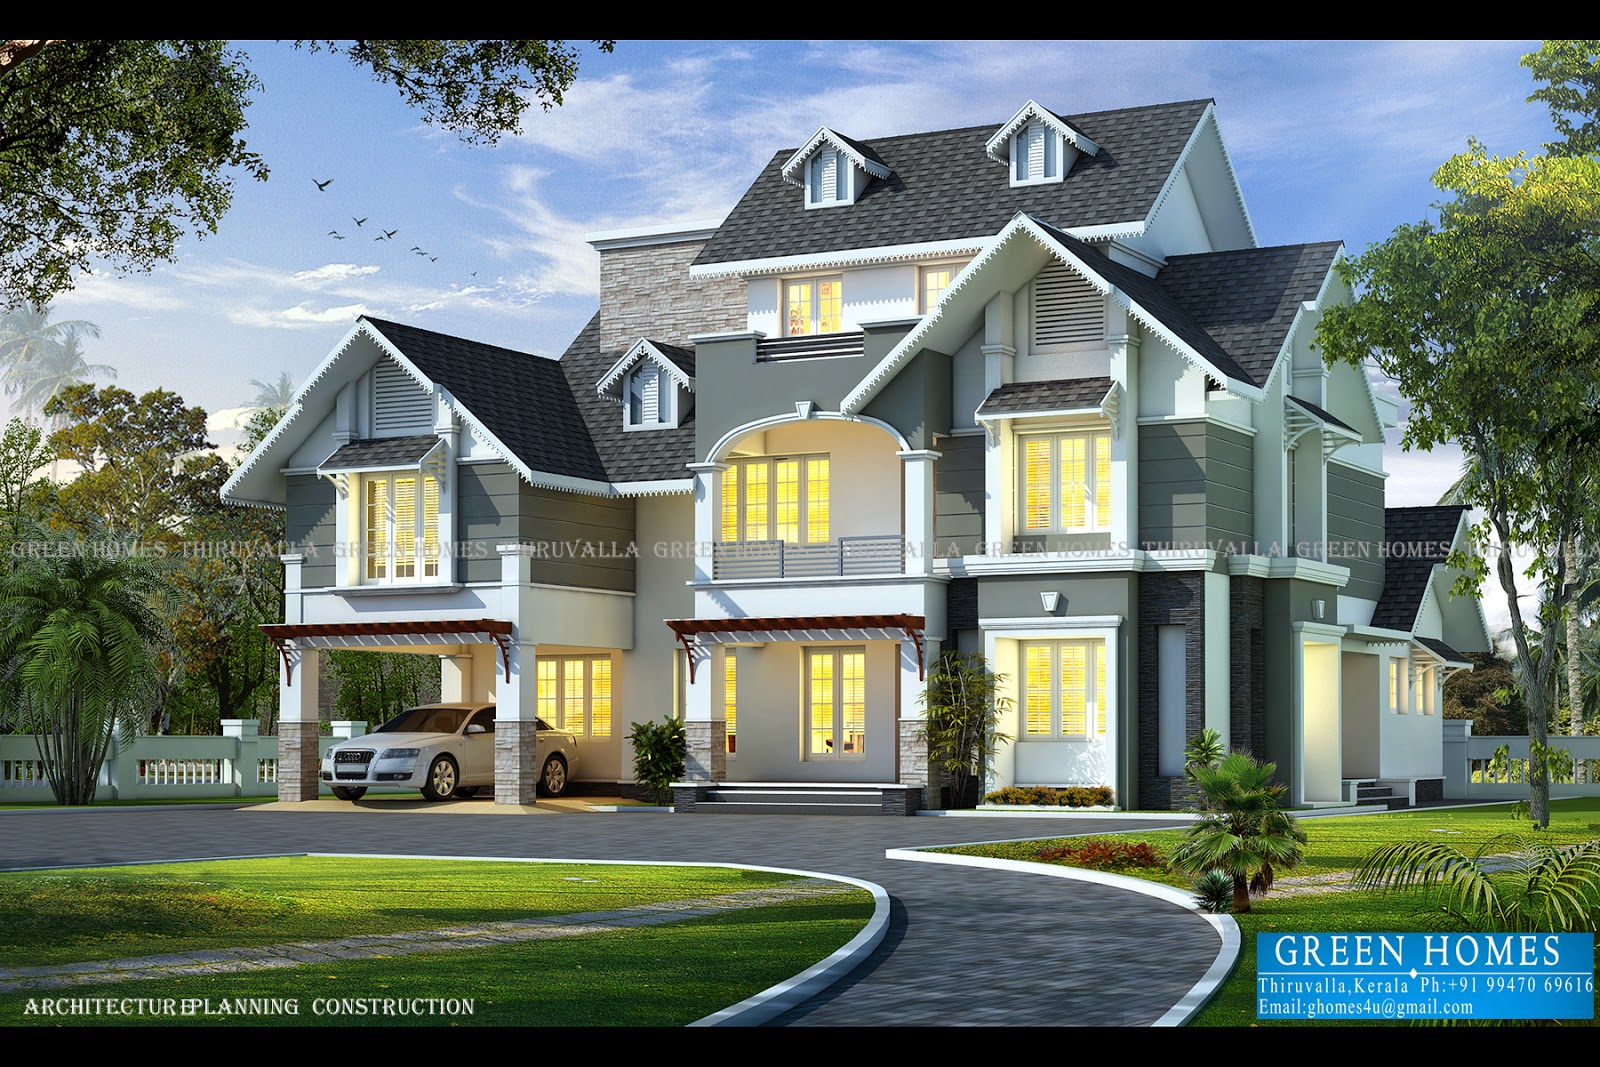 Green homes awesome european style house in 3650 sq feet for European style house floor plans